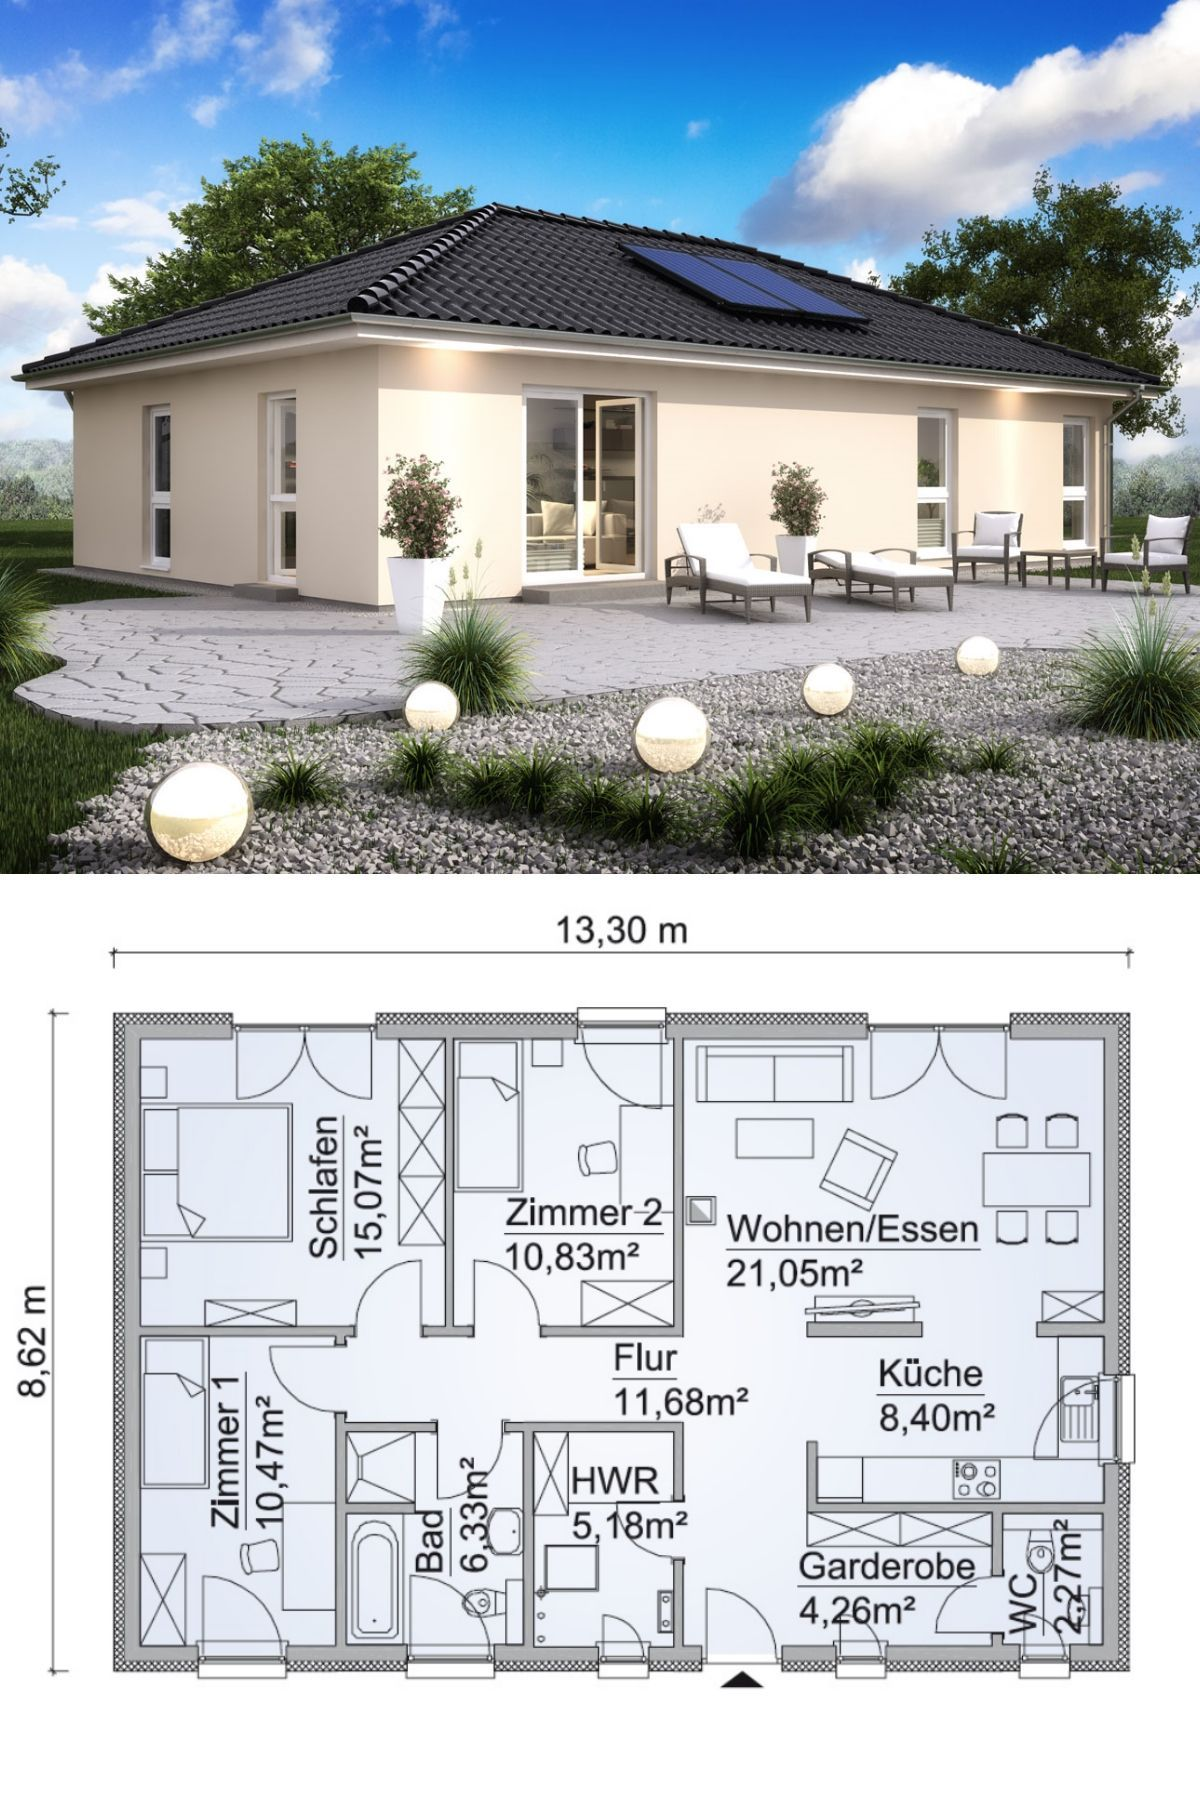 Bungalow one story modern contemporary european styles architecture design house plans bungalow sh 95 b